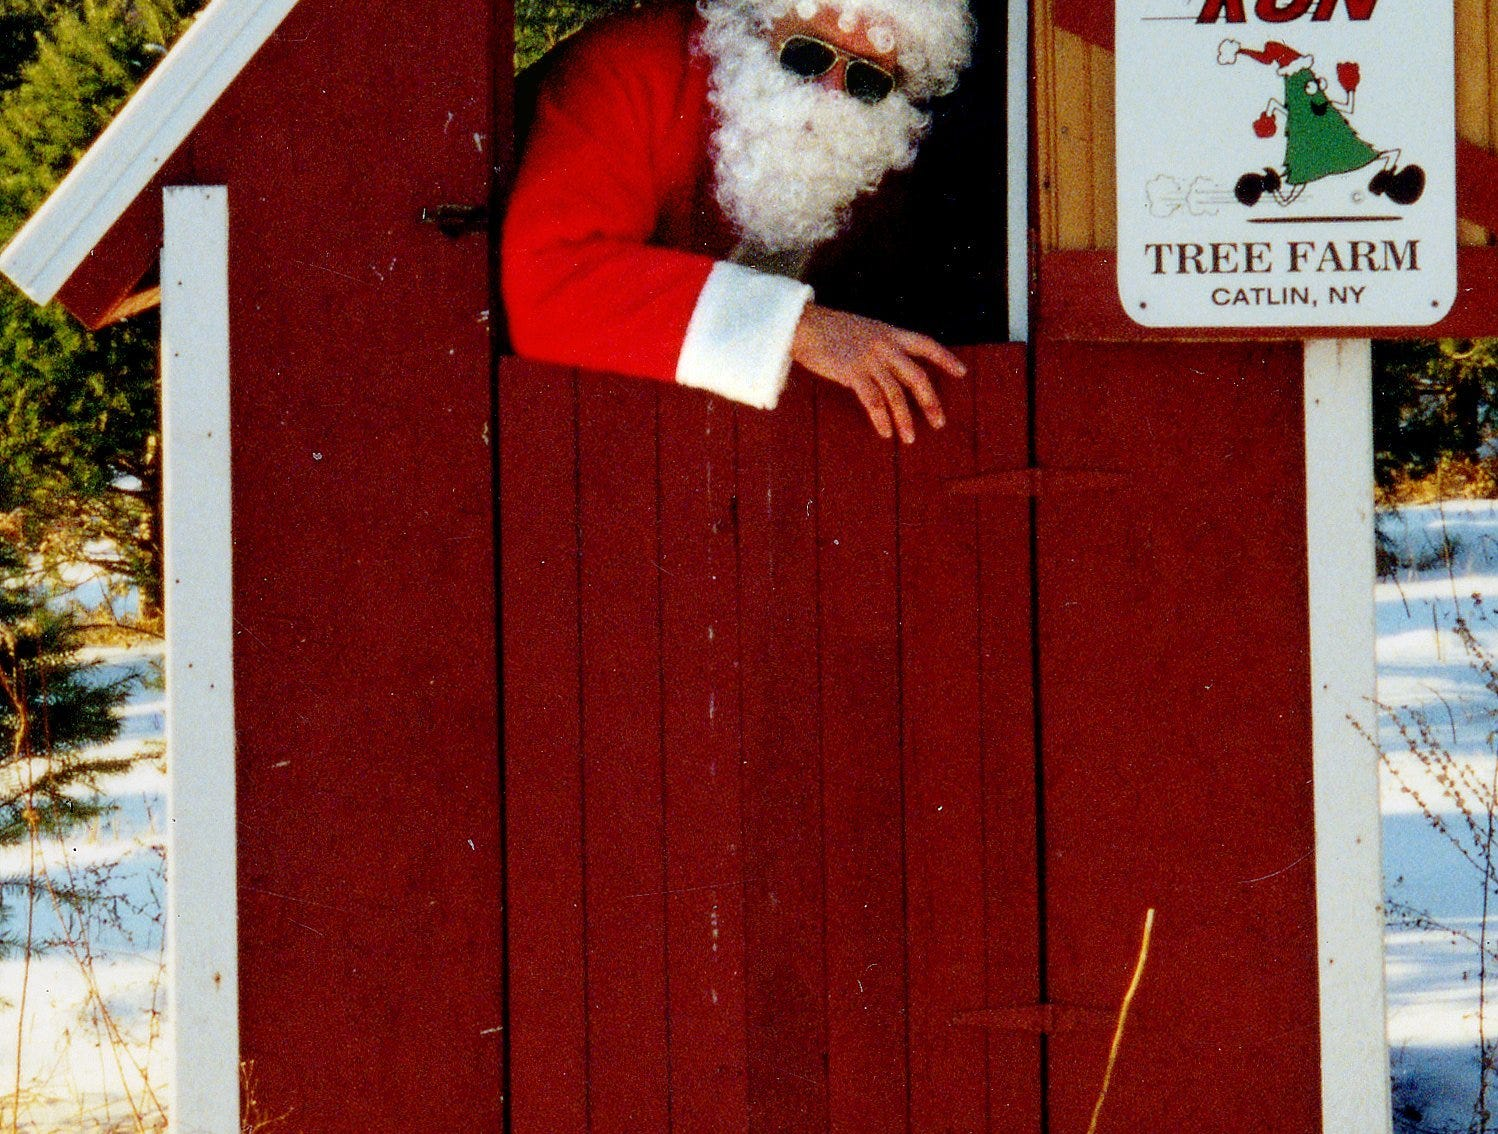 14.12.2001, 2C:    Santa makes an occasional visit to his workshop to the delight of busloads of schoolchildren atop the hill at Spruce Run Tree Farm.